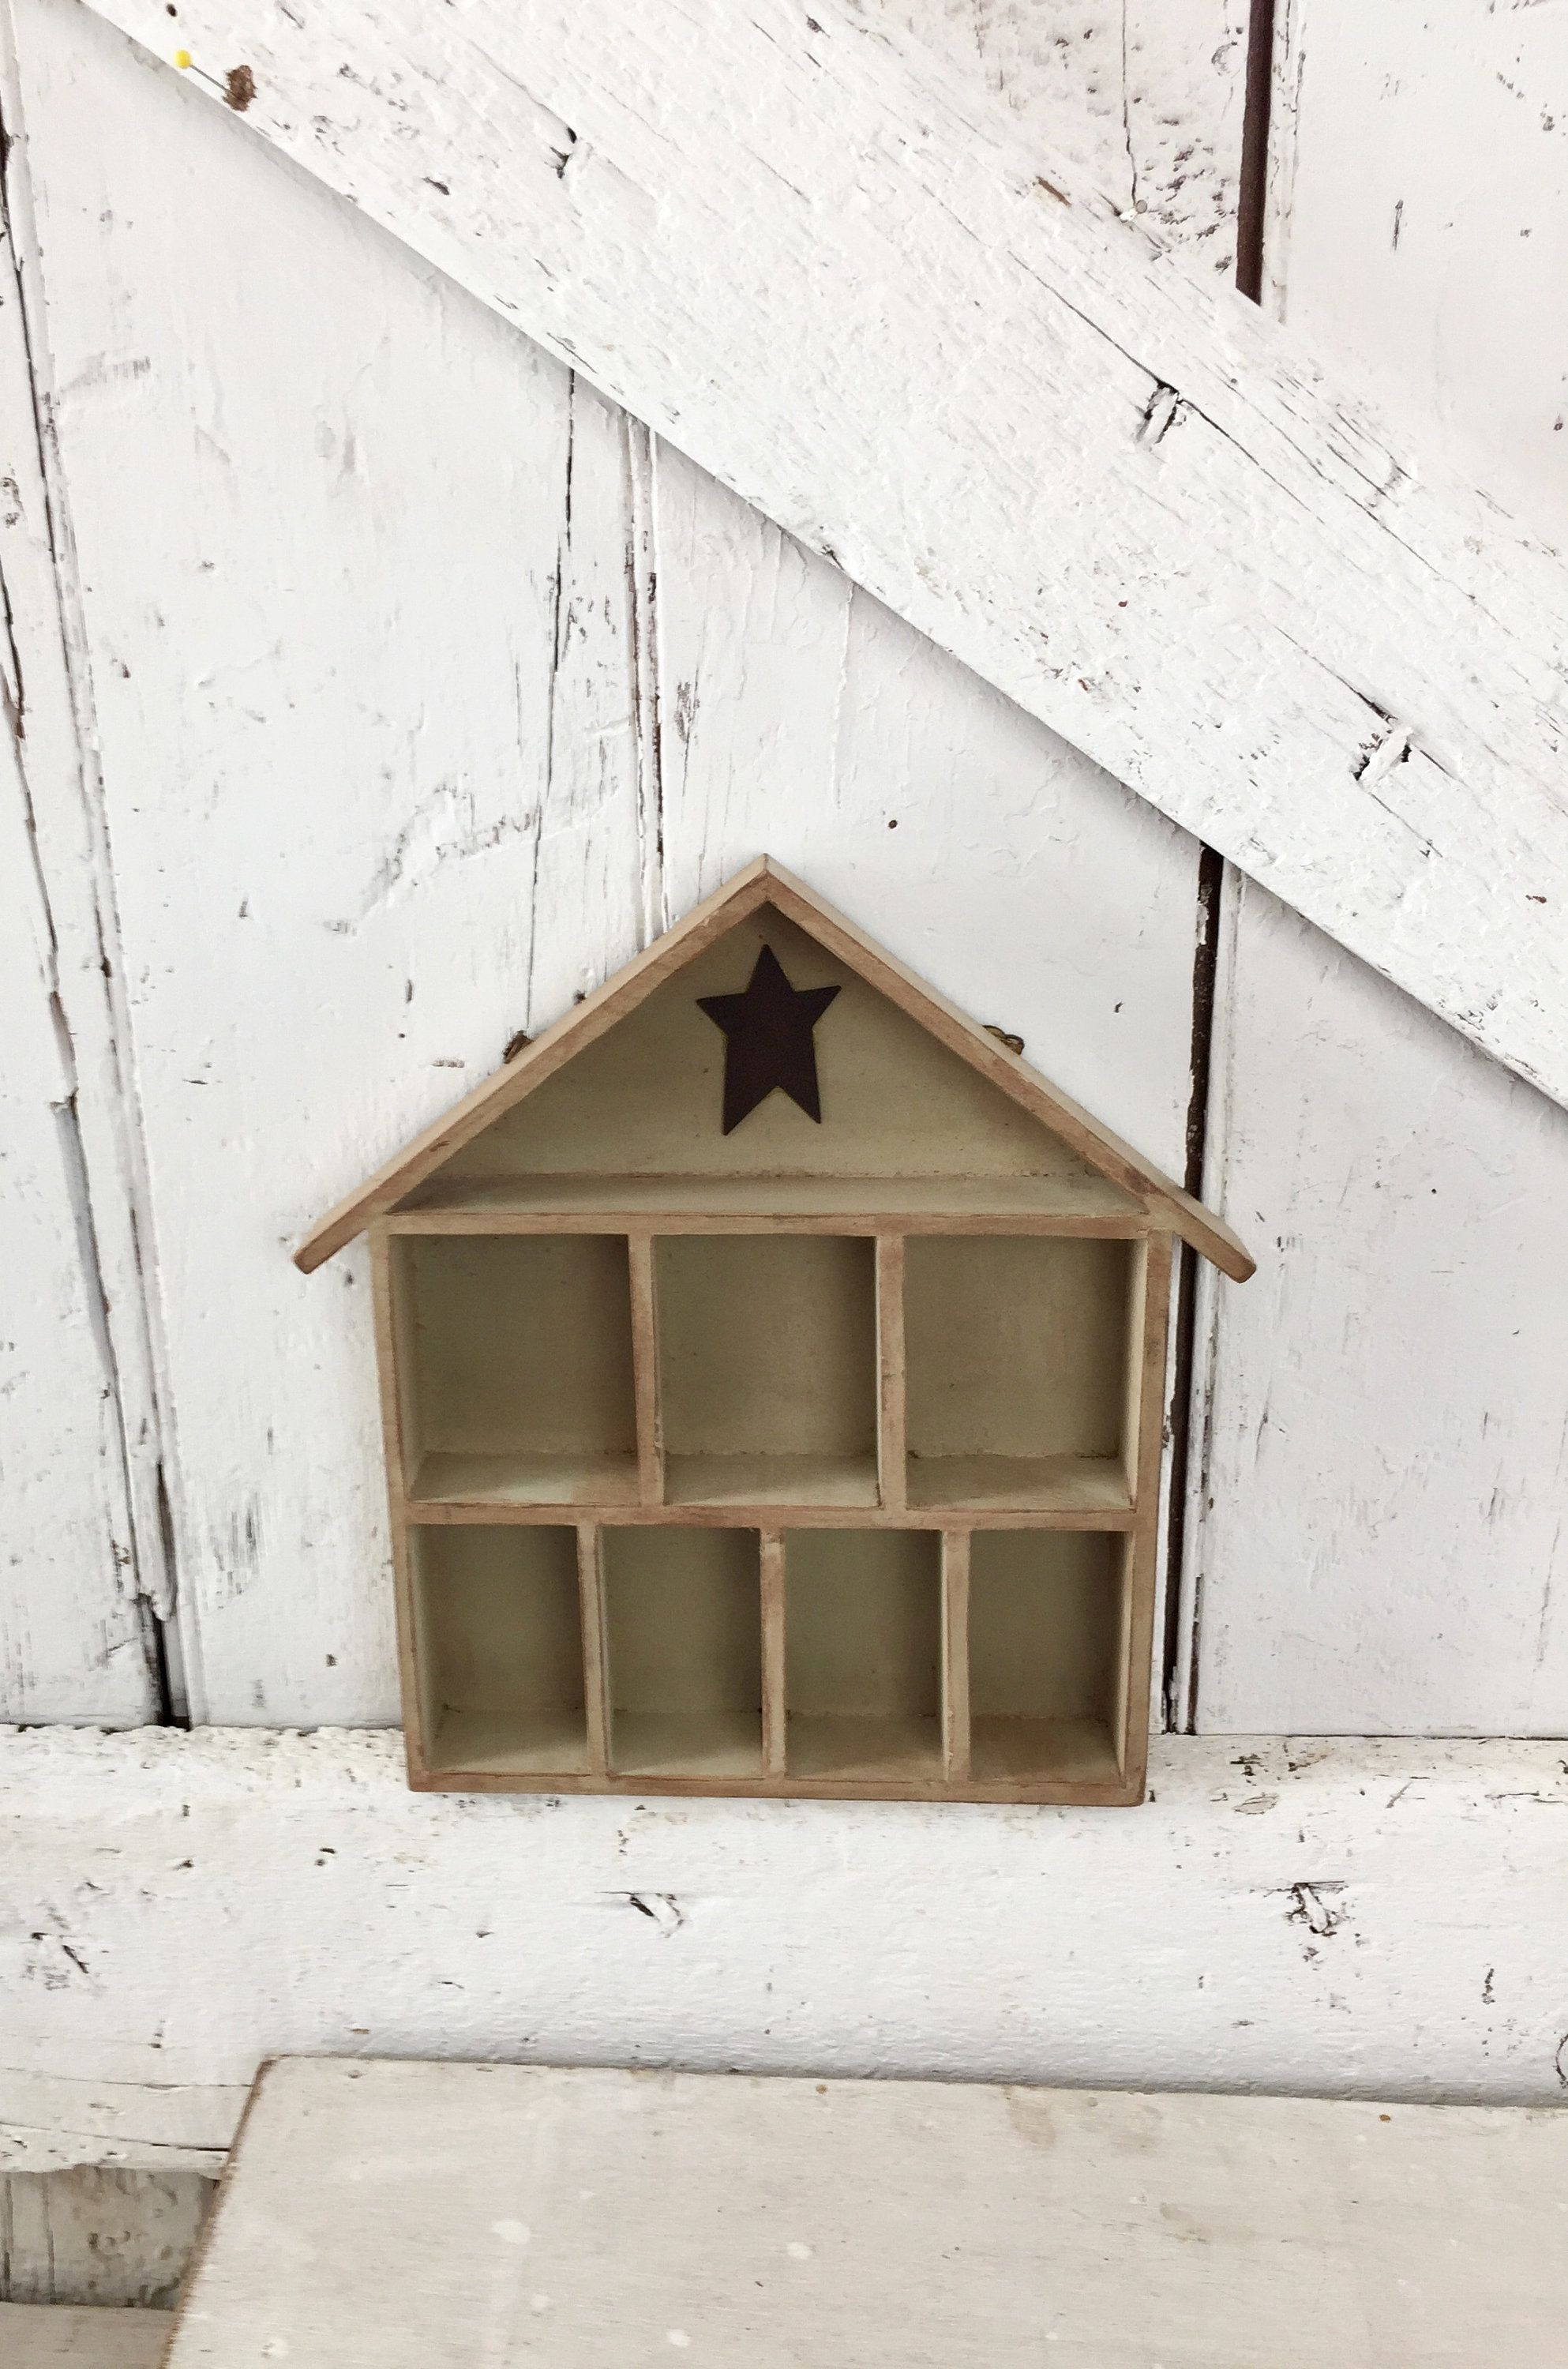 Small Wooden Cubby Shelf House Shaped Six Cubicles Shadow Box With Metal Star By Lititzcarriagehouse On Etsy Wooden Cubby Cubby Shelves Draw Woodworking Plans